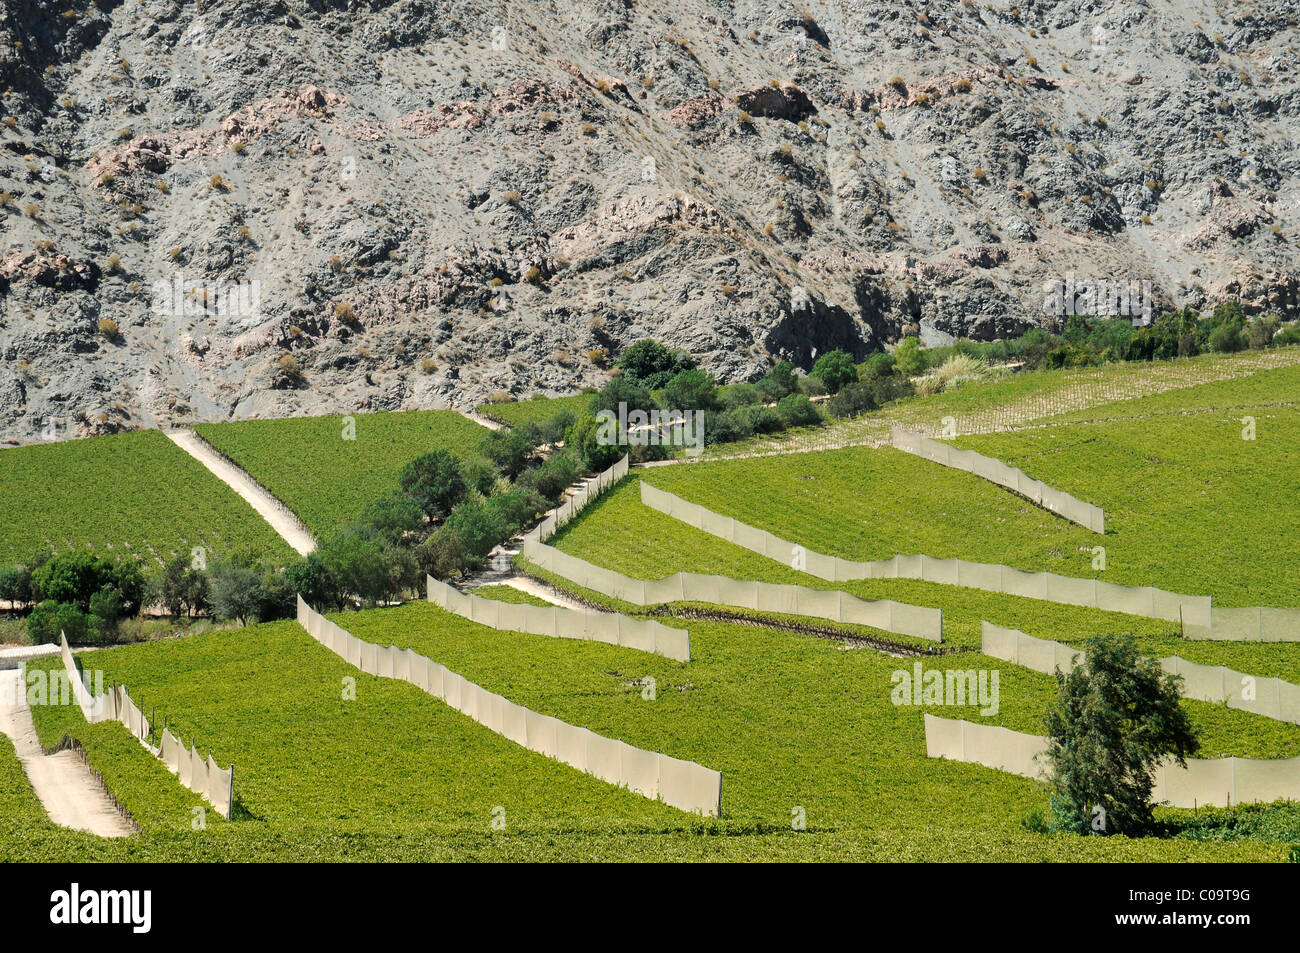 Vineyards, farming, fertile valley, desert mountains, Pisco Elqui, village, Vicuna, Valle d'Elqui, Elqui Valley, - Stock Image